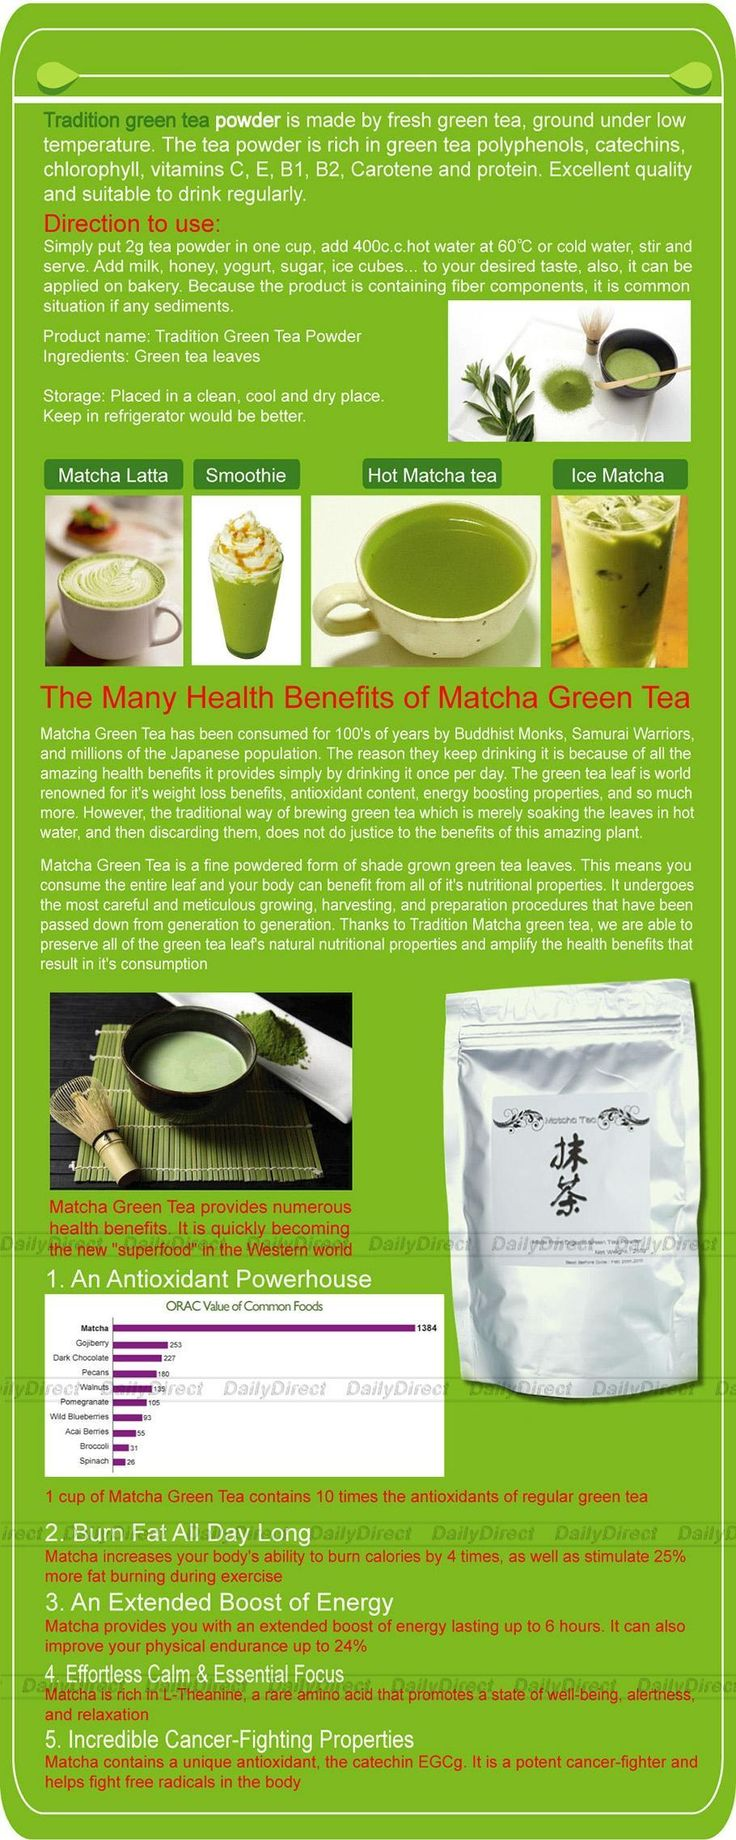 Pure Organic Matcha Green Tea Weight loss Powder+1*Bamboo Chasen Whisk – Pitchy Tea Delights #matchagreentea #healthy #healthyliving #fightingcancer #healingcancer #antioxidant  #antioxidantfoods #matchalatte #matchatea #matchalatte #matcha #healing #healingcancer